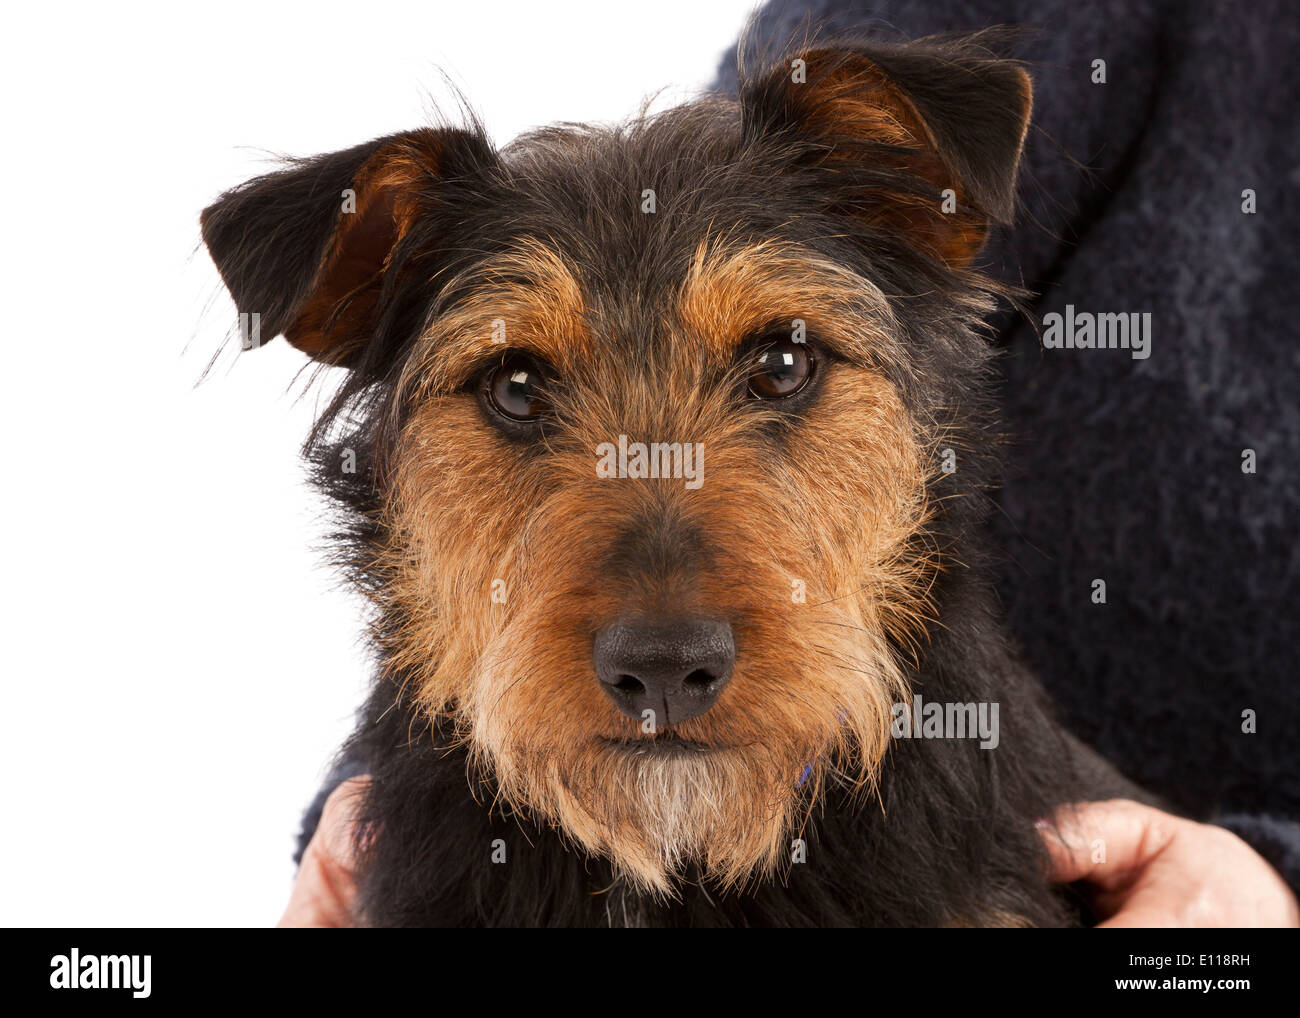 Portrait of a young black and tan Terrier dog - Stock Image